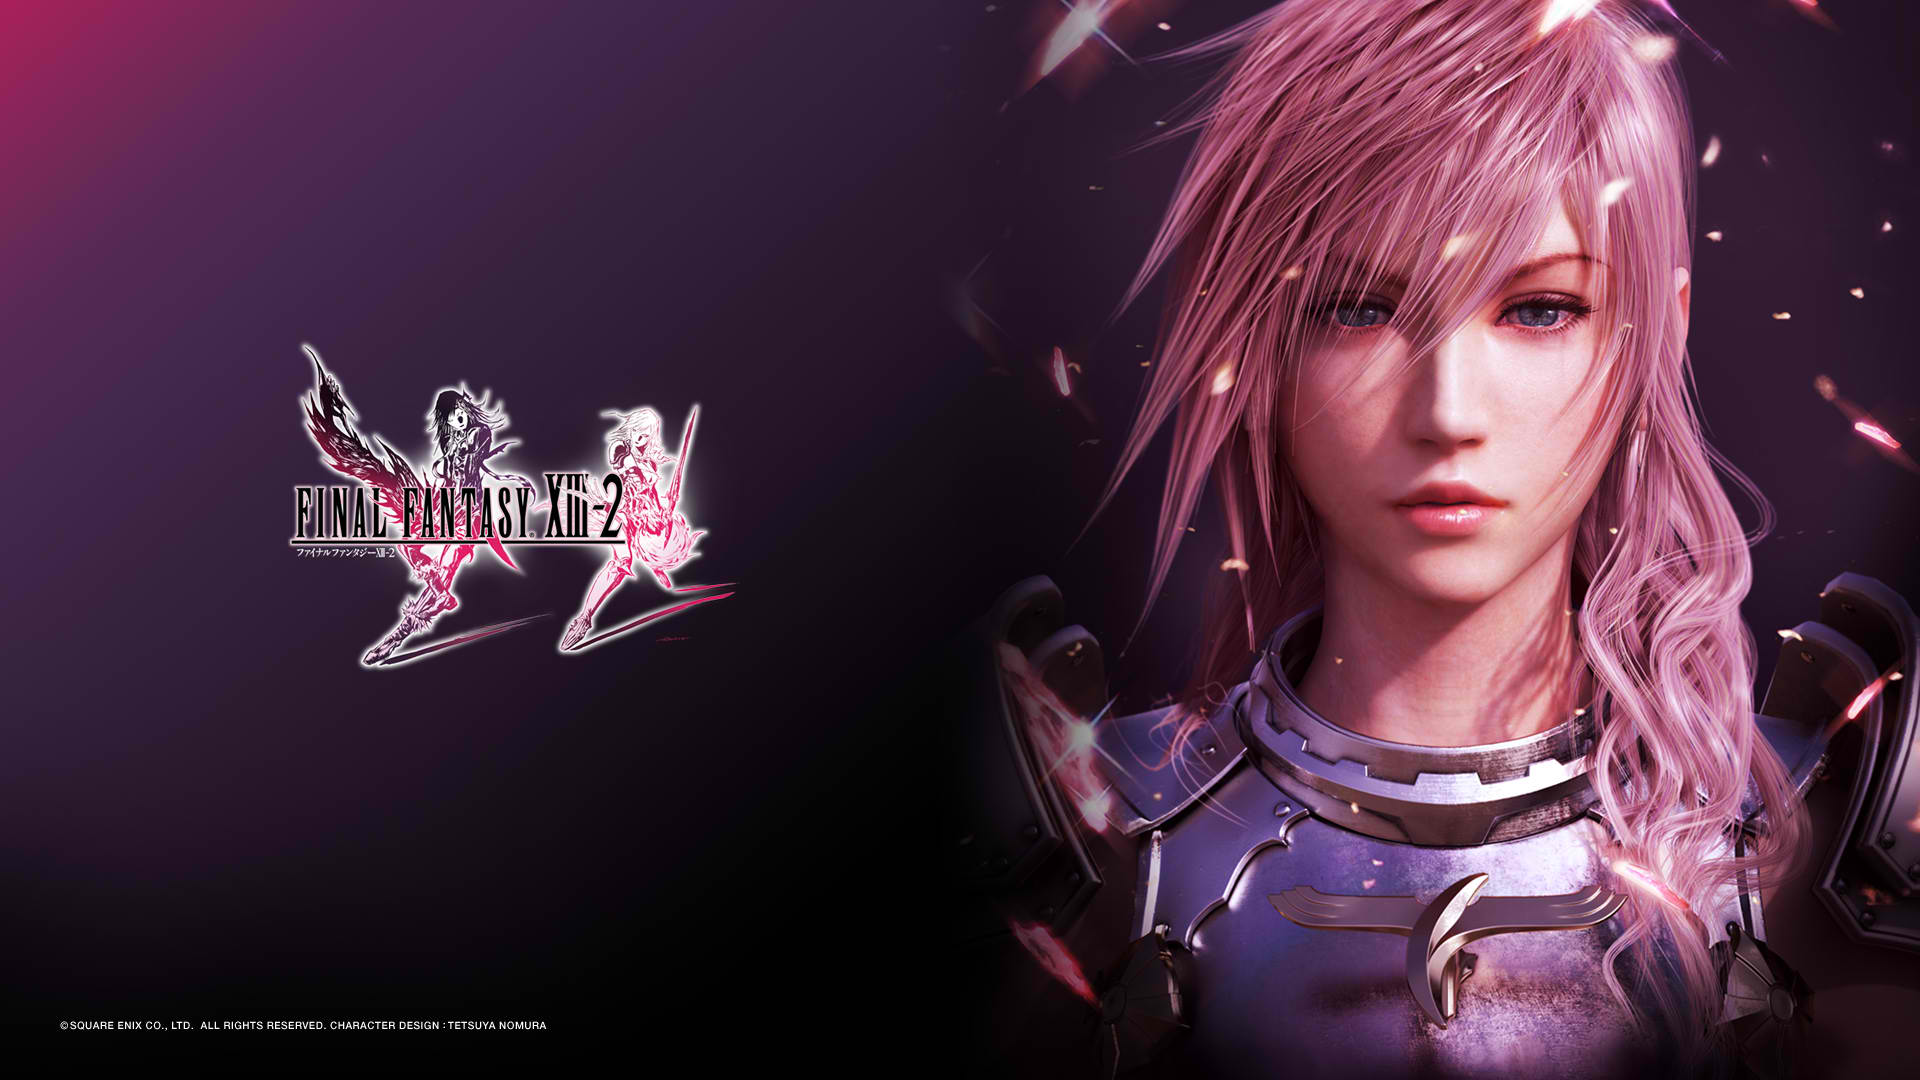 Final Fantasy Xiii 2 Wallpaper Hd wallpaper   479363 1920x1080